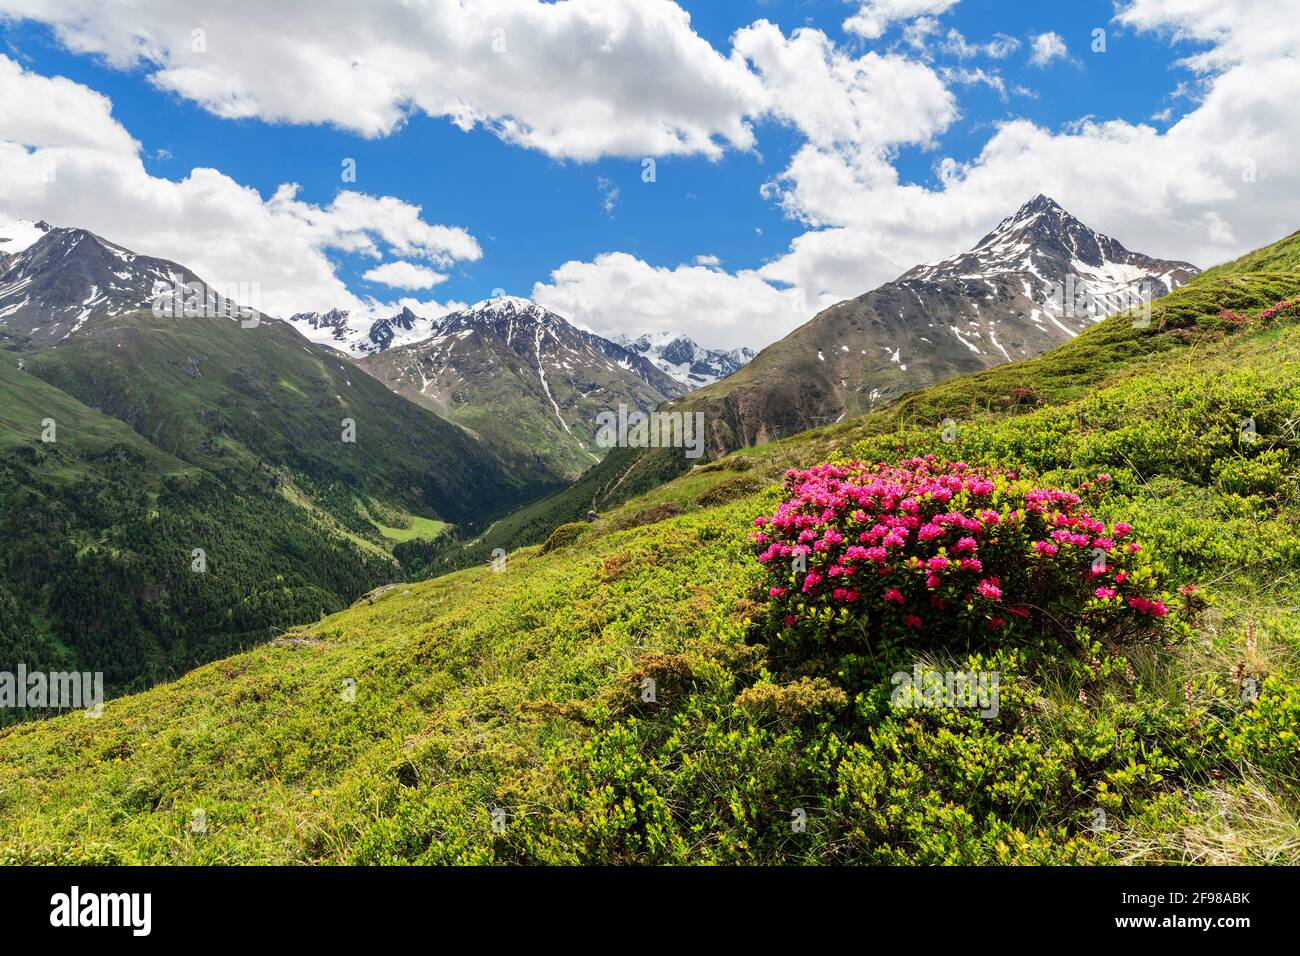 Alpine mountain landscape with alpine roses and snow-capped peaks on a sunny summer day. Ötztal Alps, Tyrol, Austria Stock Photo